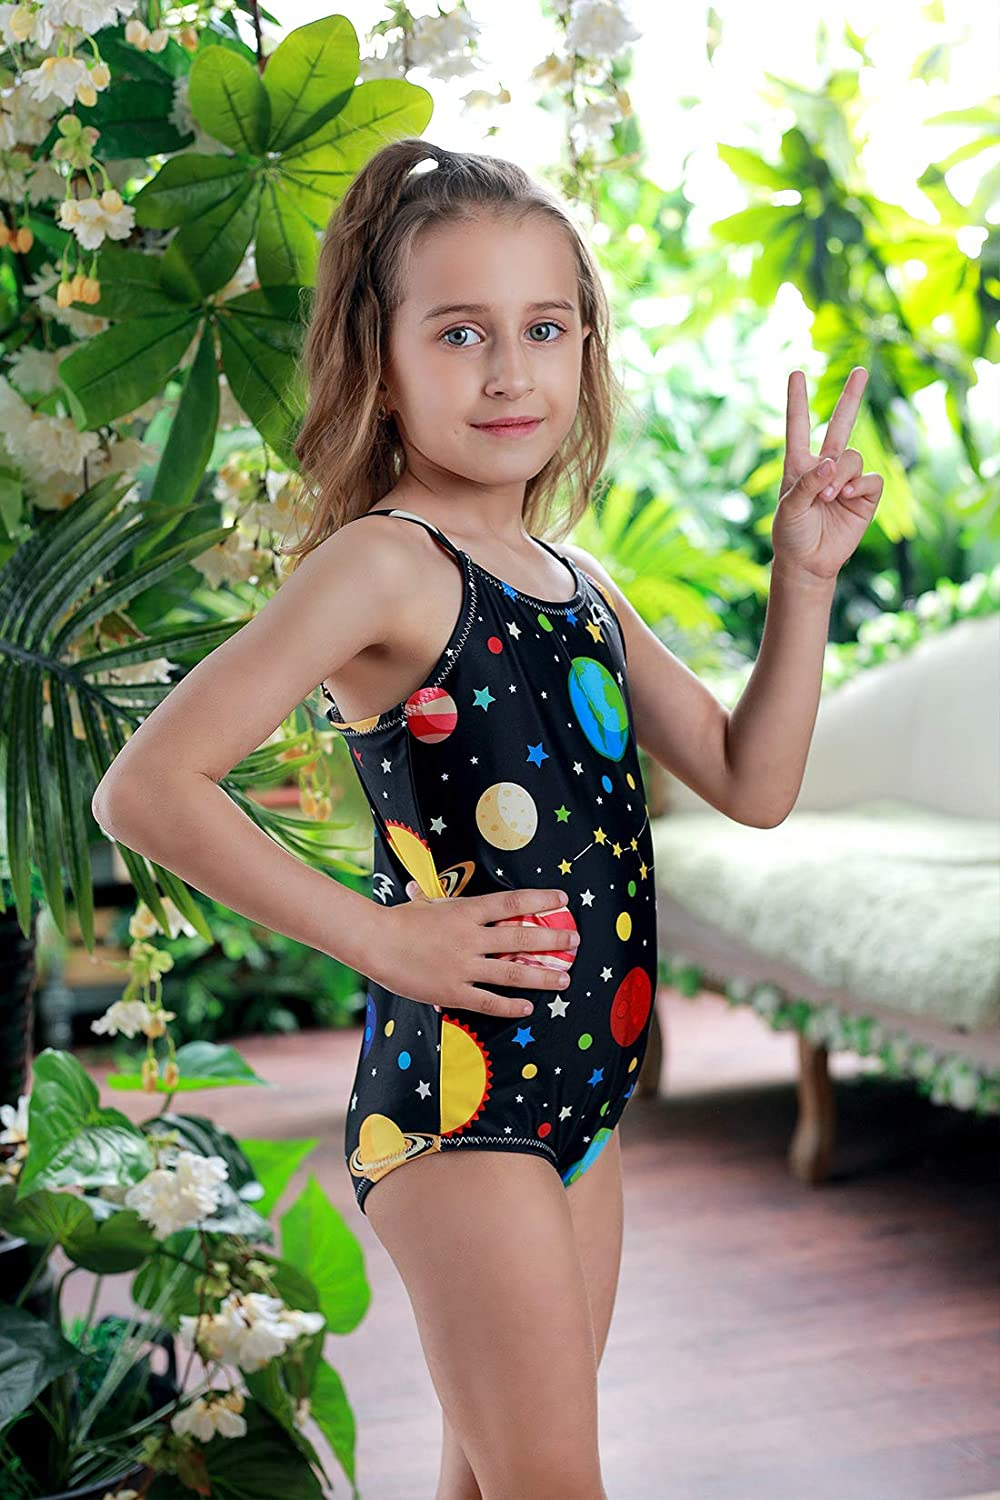 AIDEAONE Girls One Piece Swimsuit All Over Print Novelty Swimwear Bathing Suits 4-10 Years